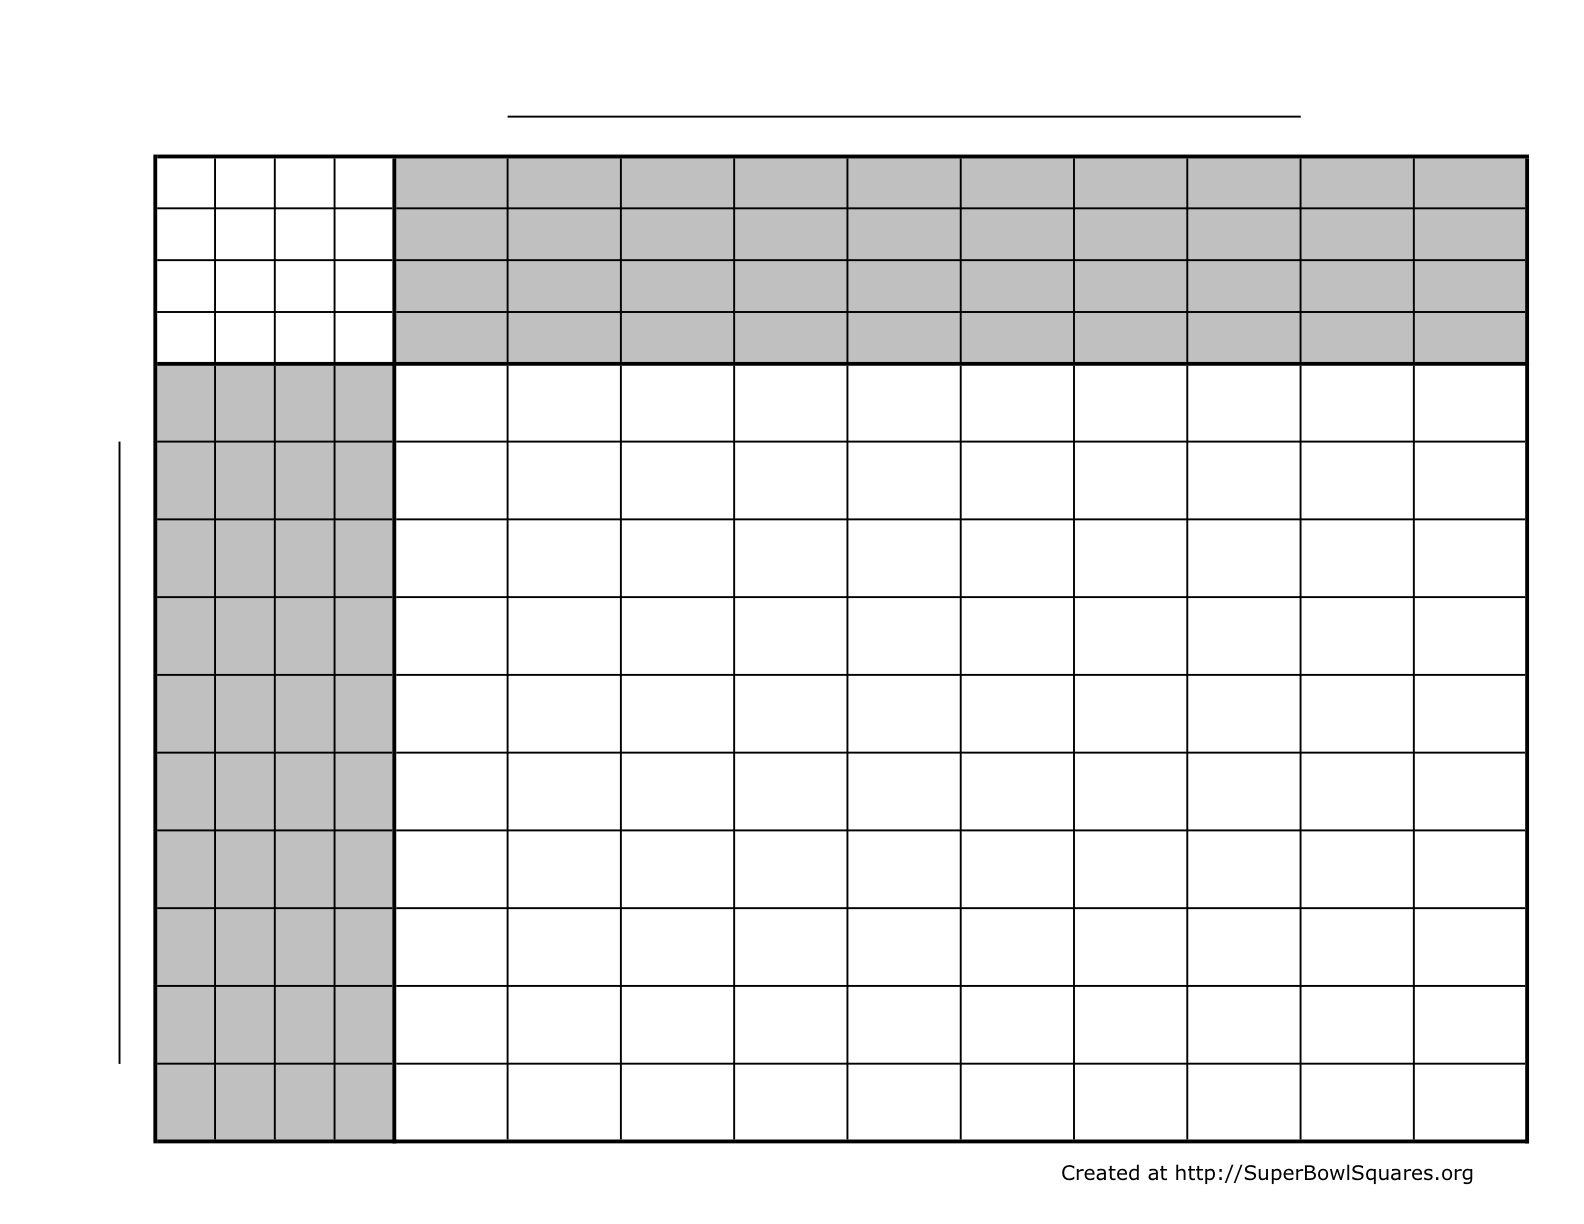 It is an image of 100 Square Grid Printable within downloadable